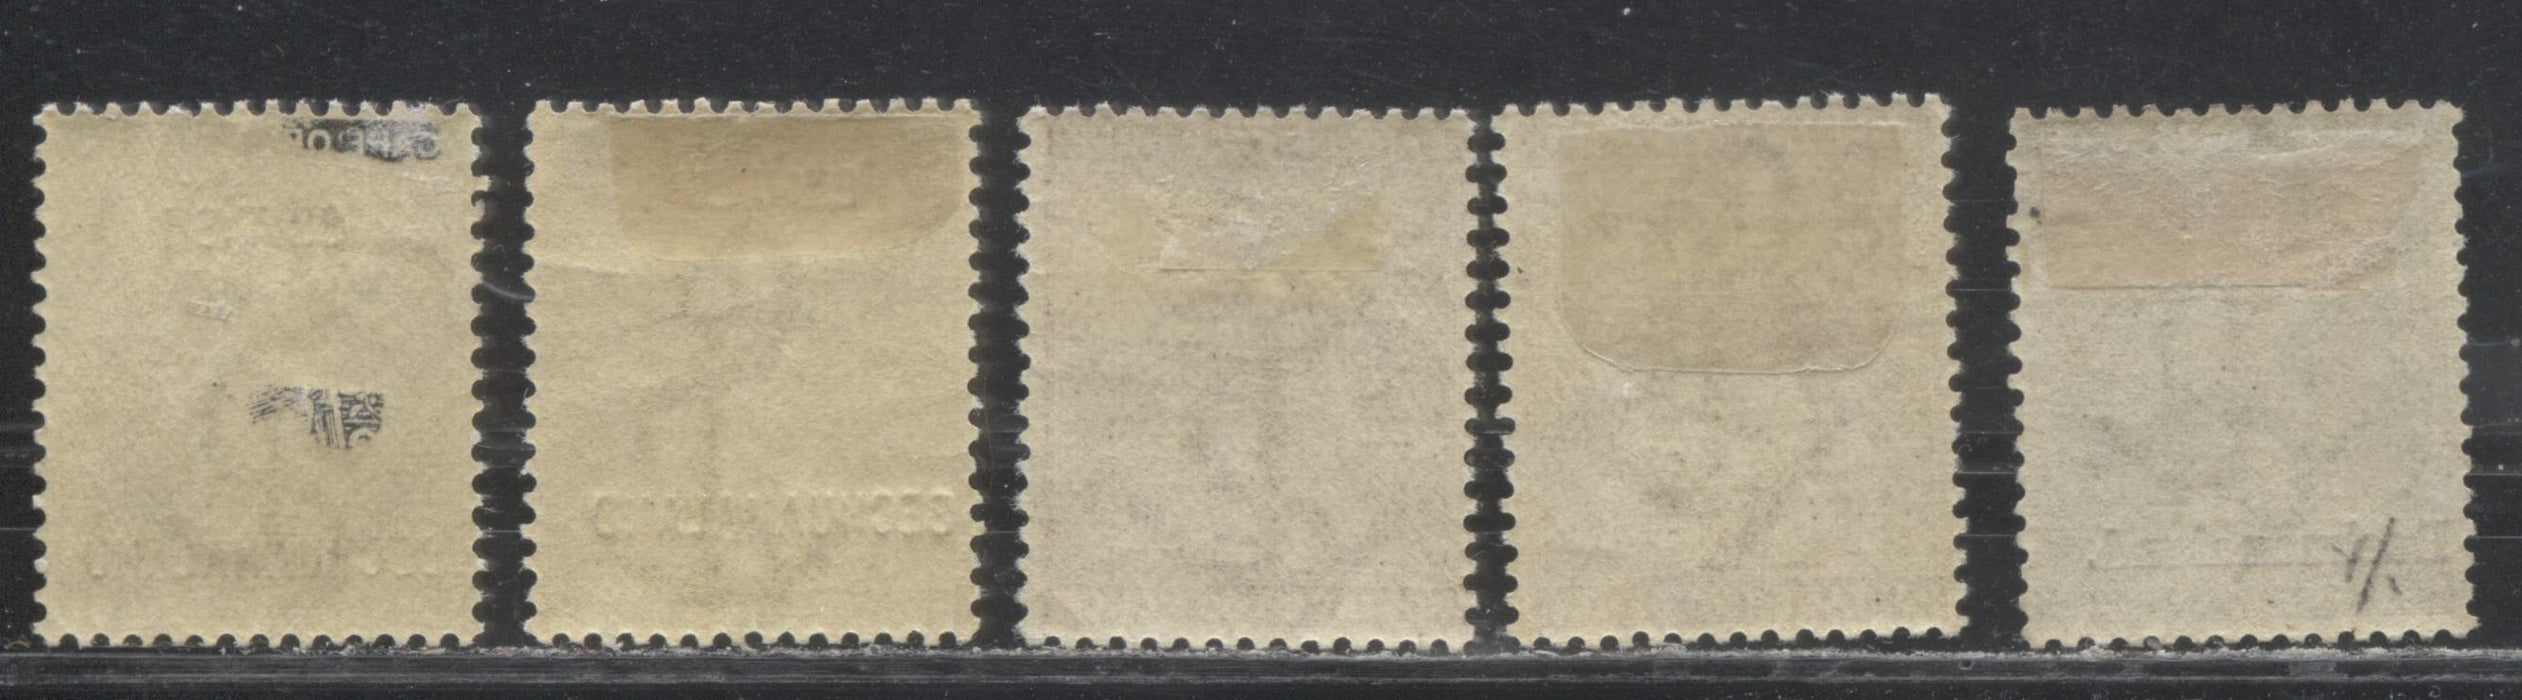 Bechuanaland Protectorate #29, 32, 40 (SG#30, 32, 56) 1/2d Grey Black - 2d Bistre Brown, 1888-1897 Overprinted Seated Hope Keyplate Issues, VF Mint Examples, Including Overprint Varieties